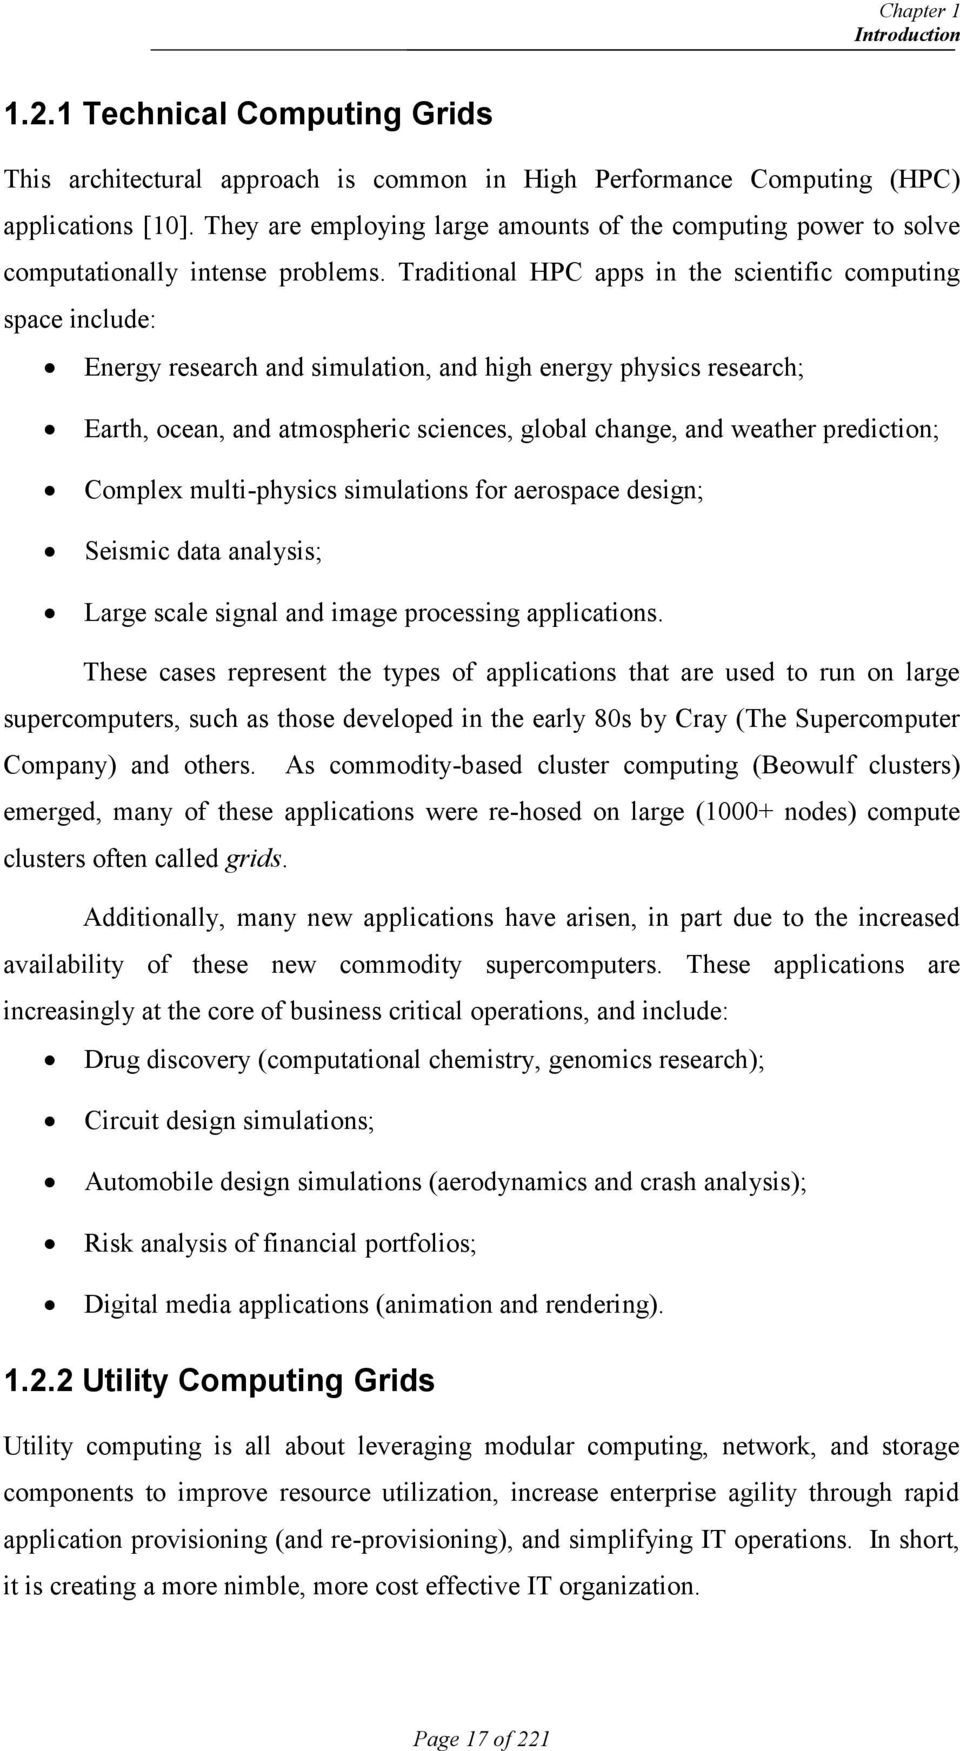 Traditional HPC apps in the scientific computing space include: Energy research and simulation, and high energy physics research; Earth, ocean, and atmospheric sciences, global change, and weather